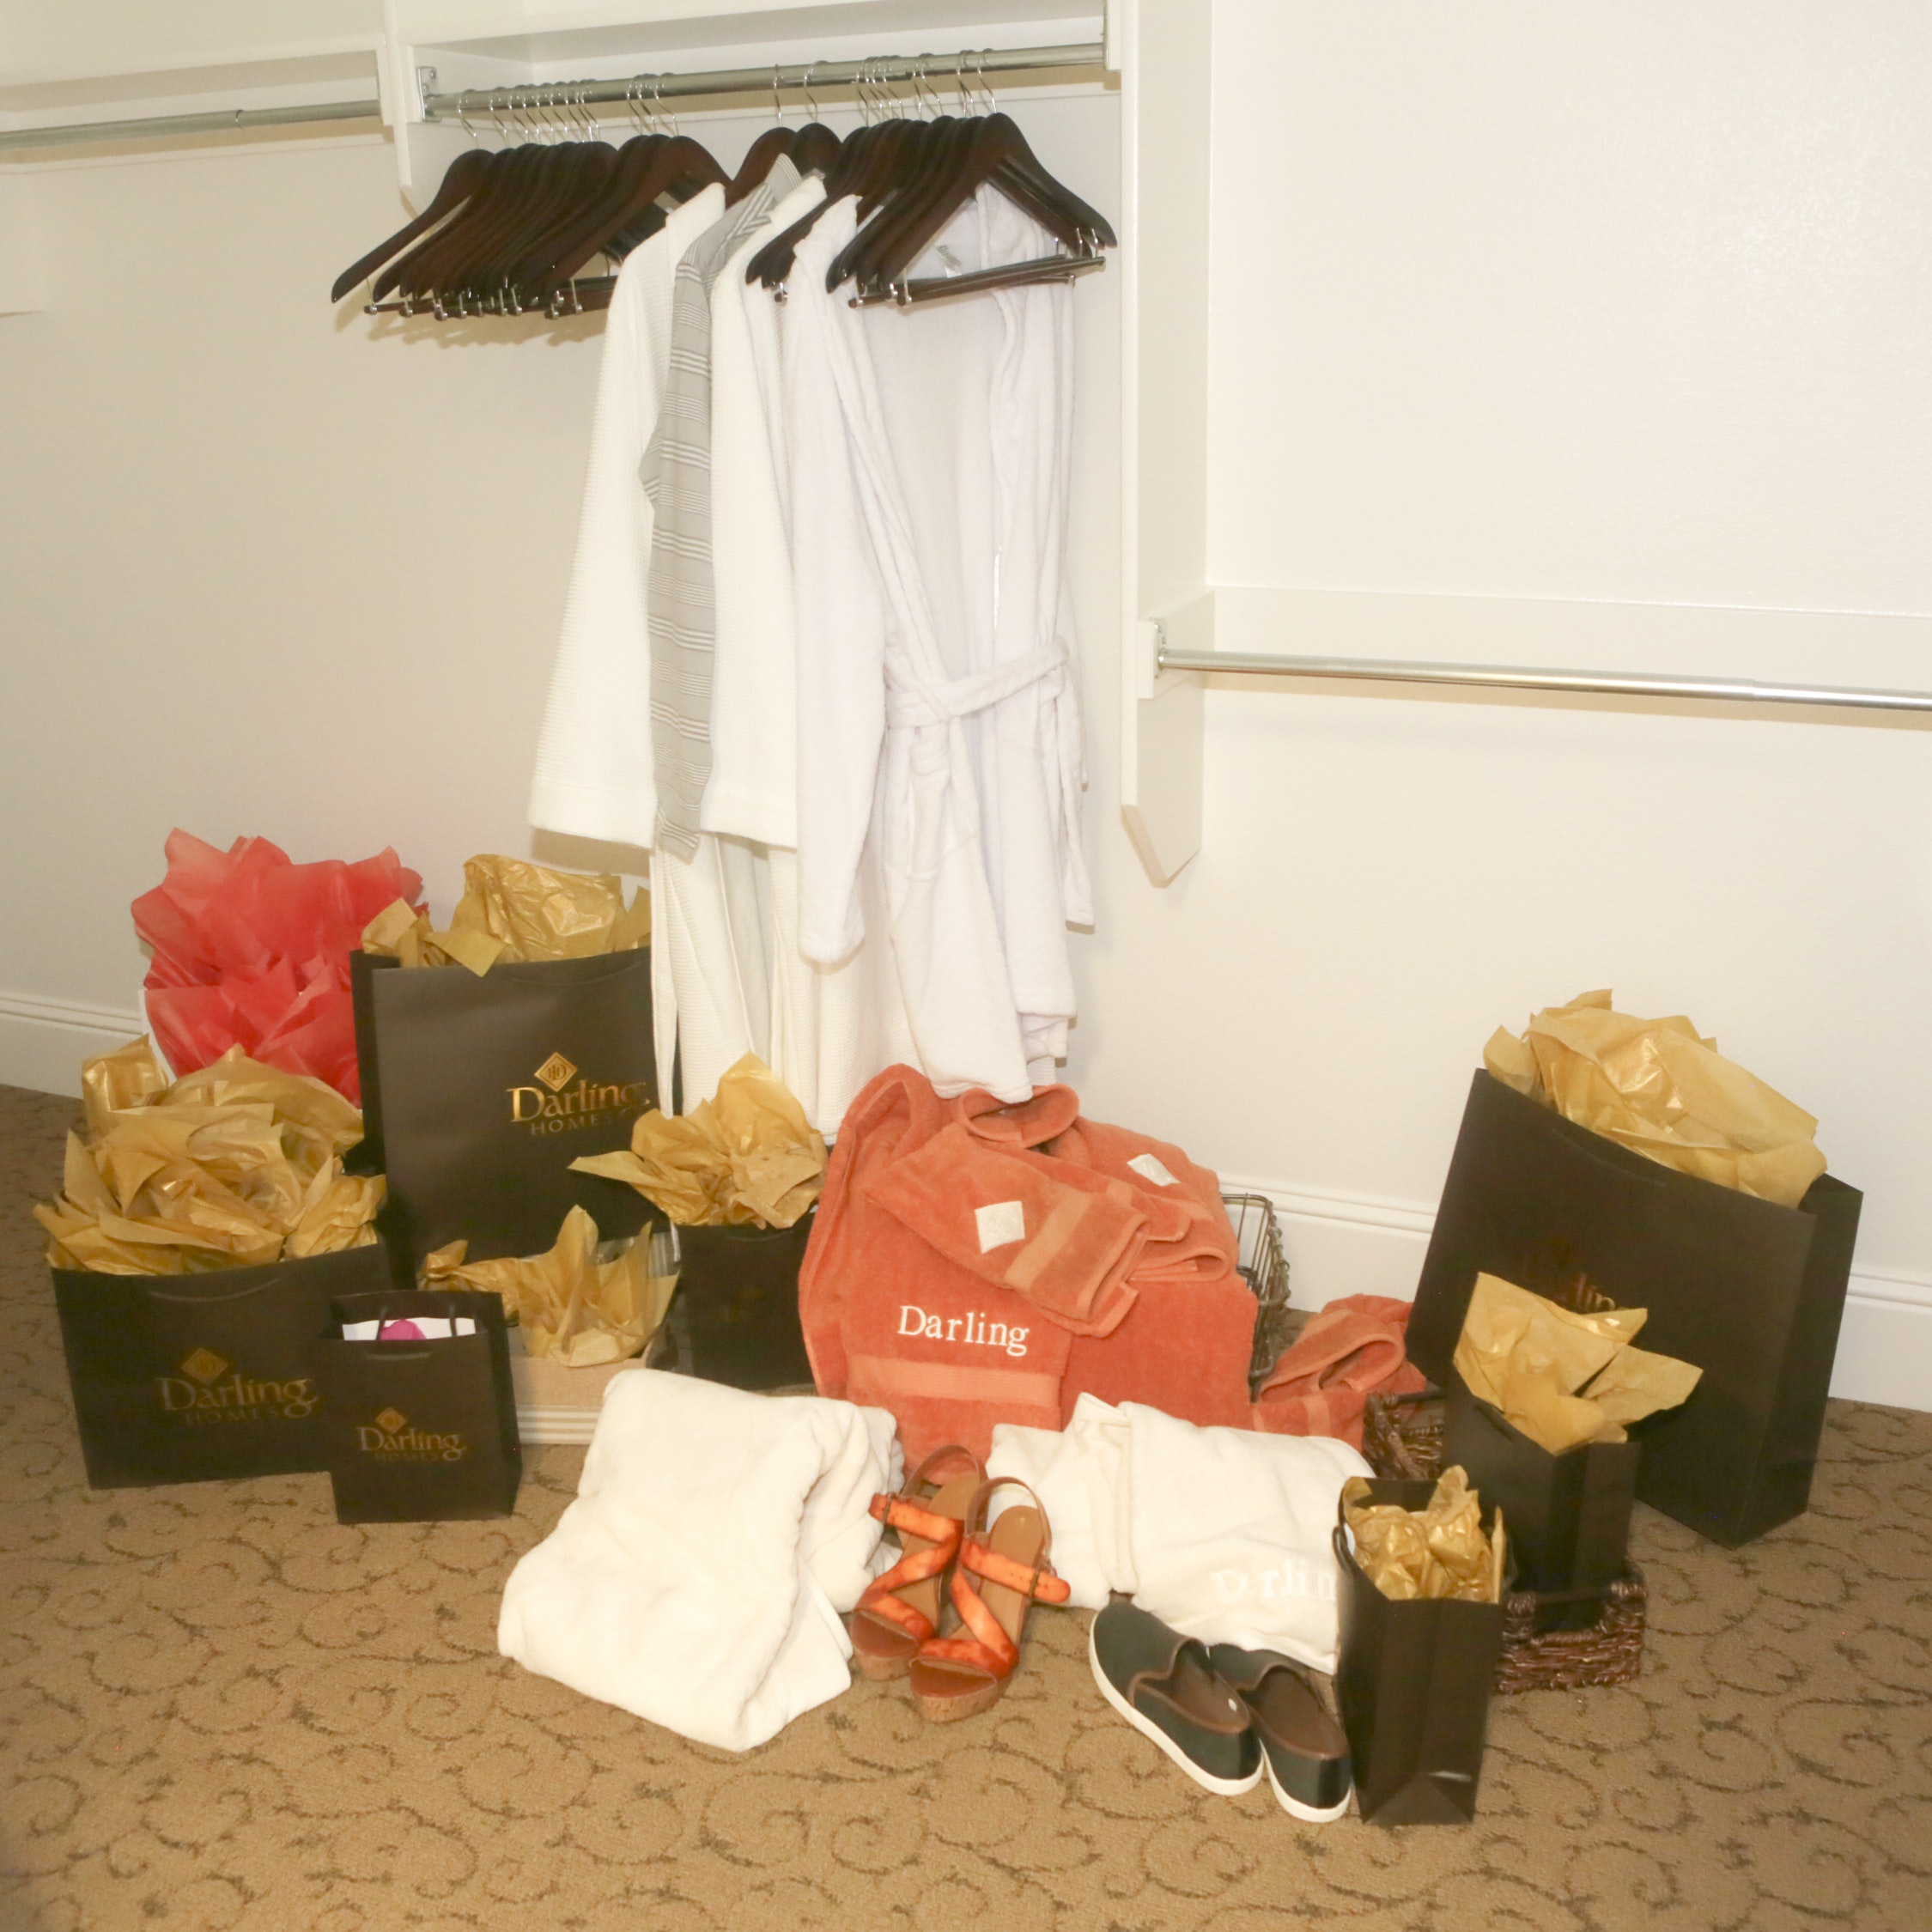 Bath Robes, Towels, Gift Bags, Hangars, and Shoes